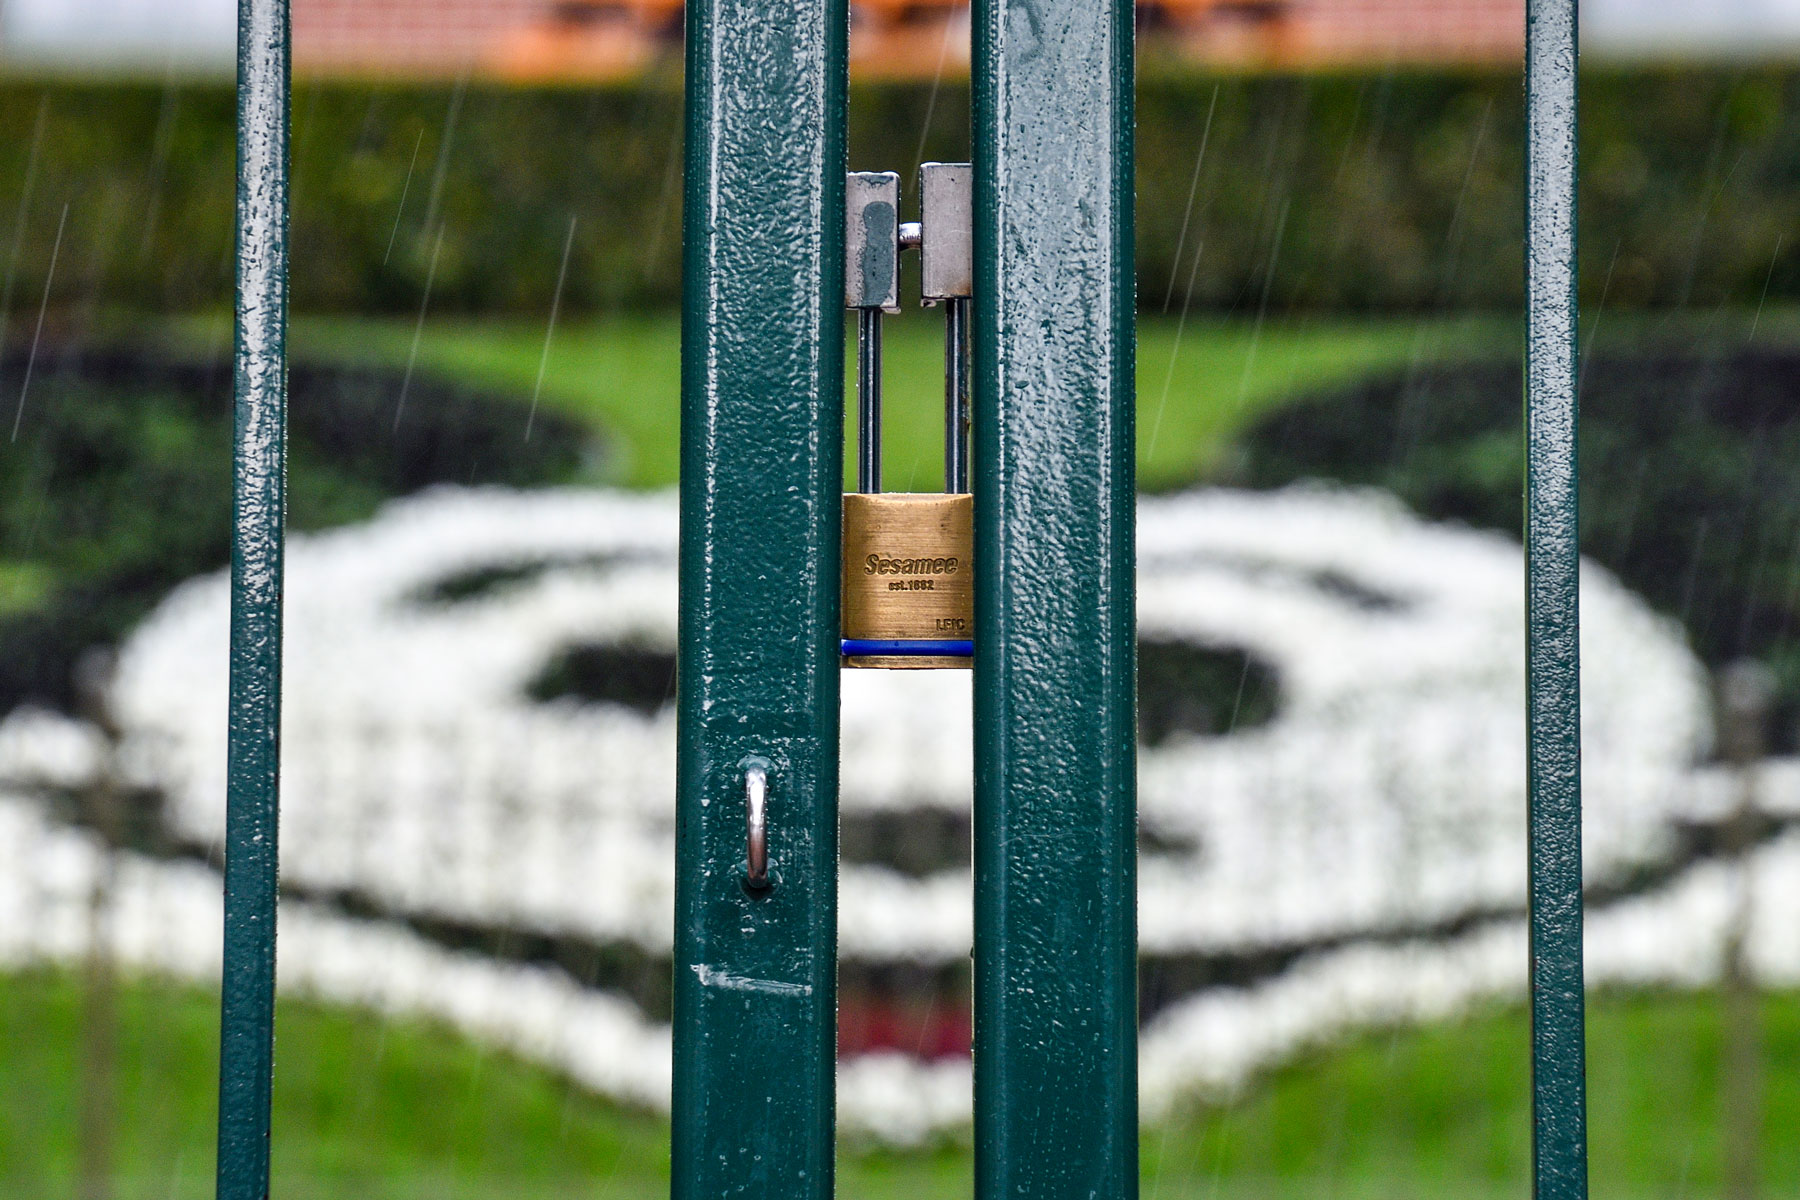 A lock hangs on the center gate between the turnstiles at the entrance to Disneyland